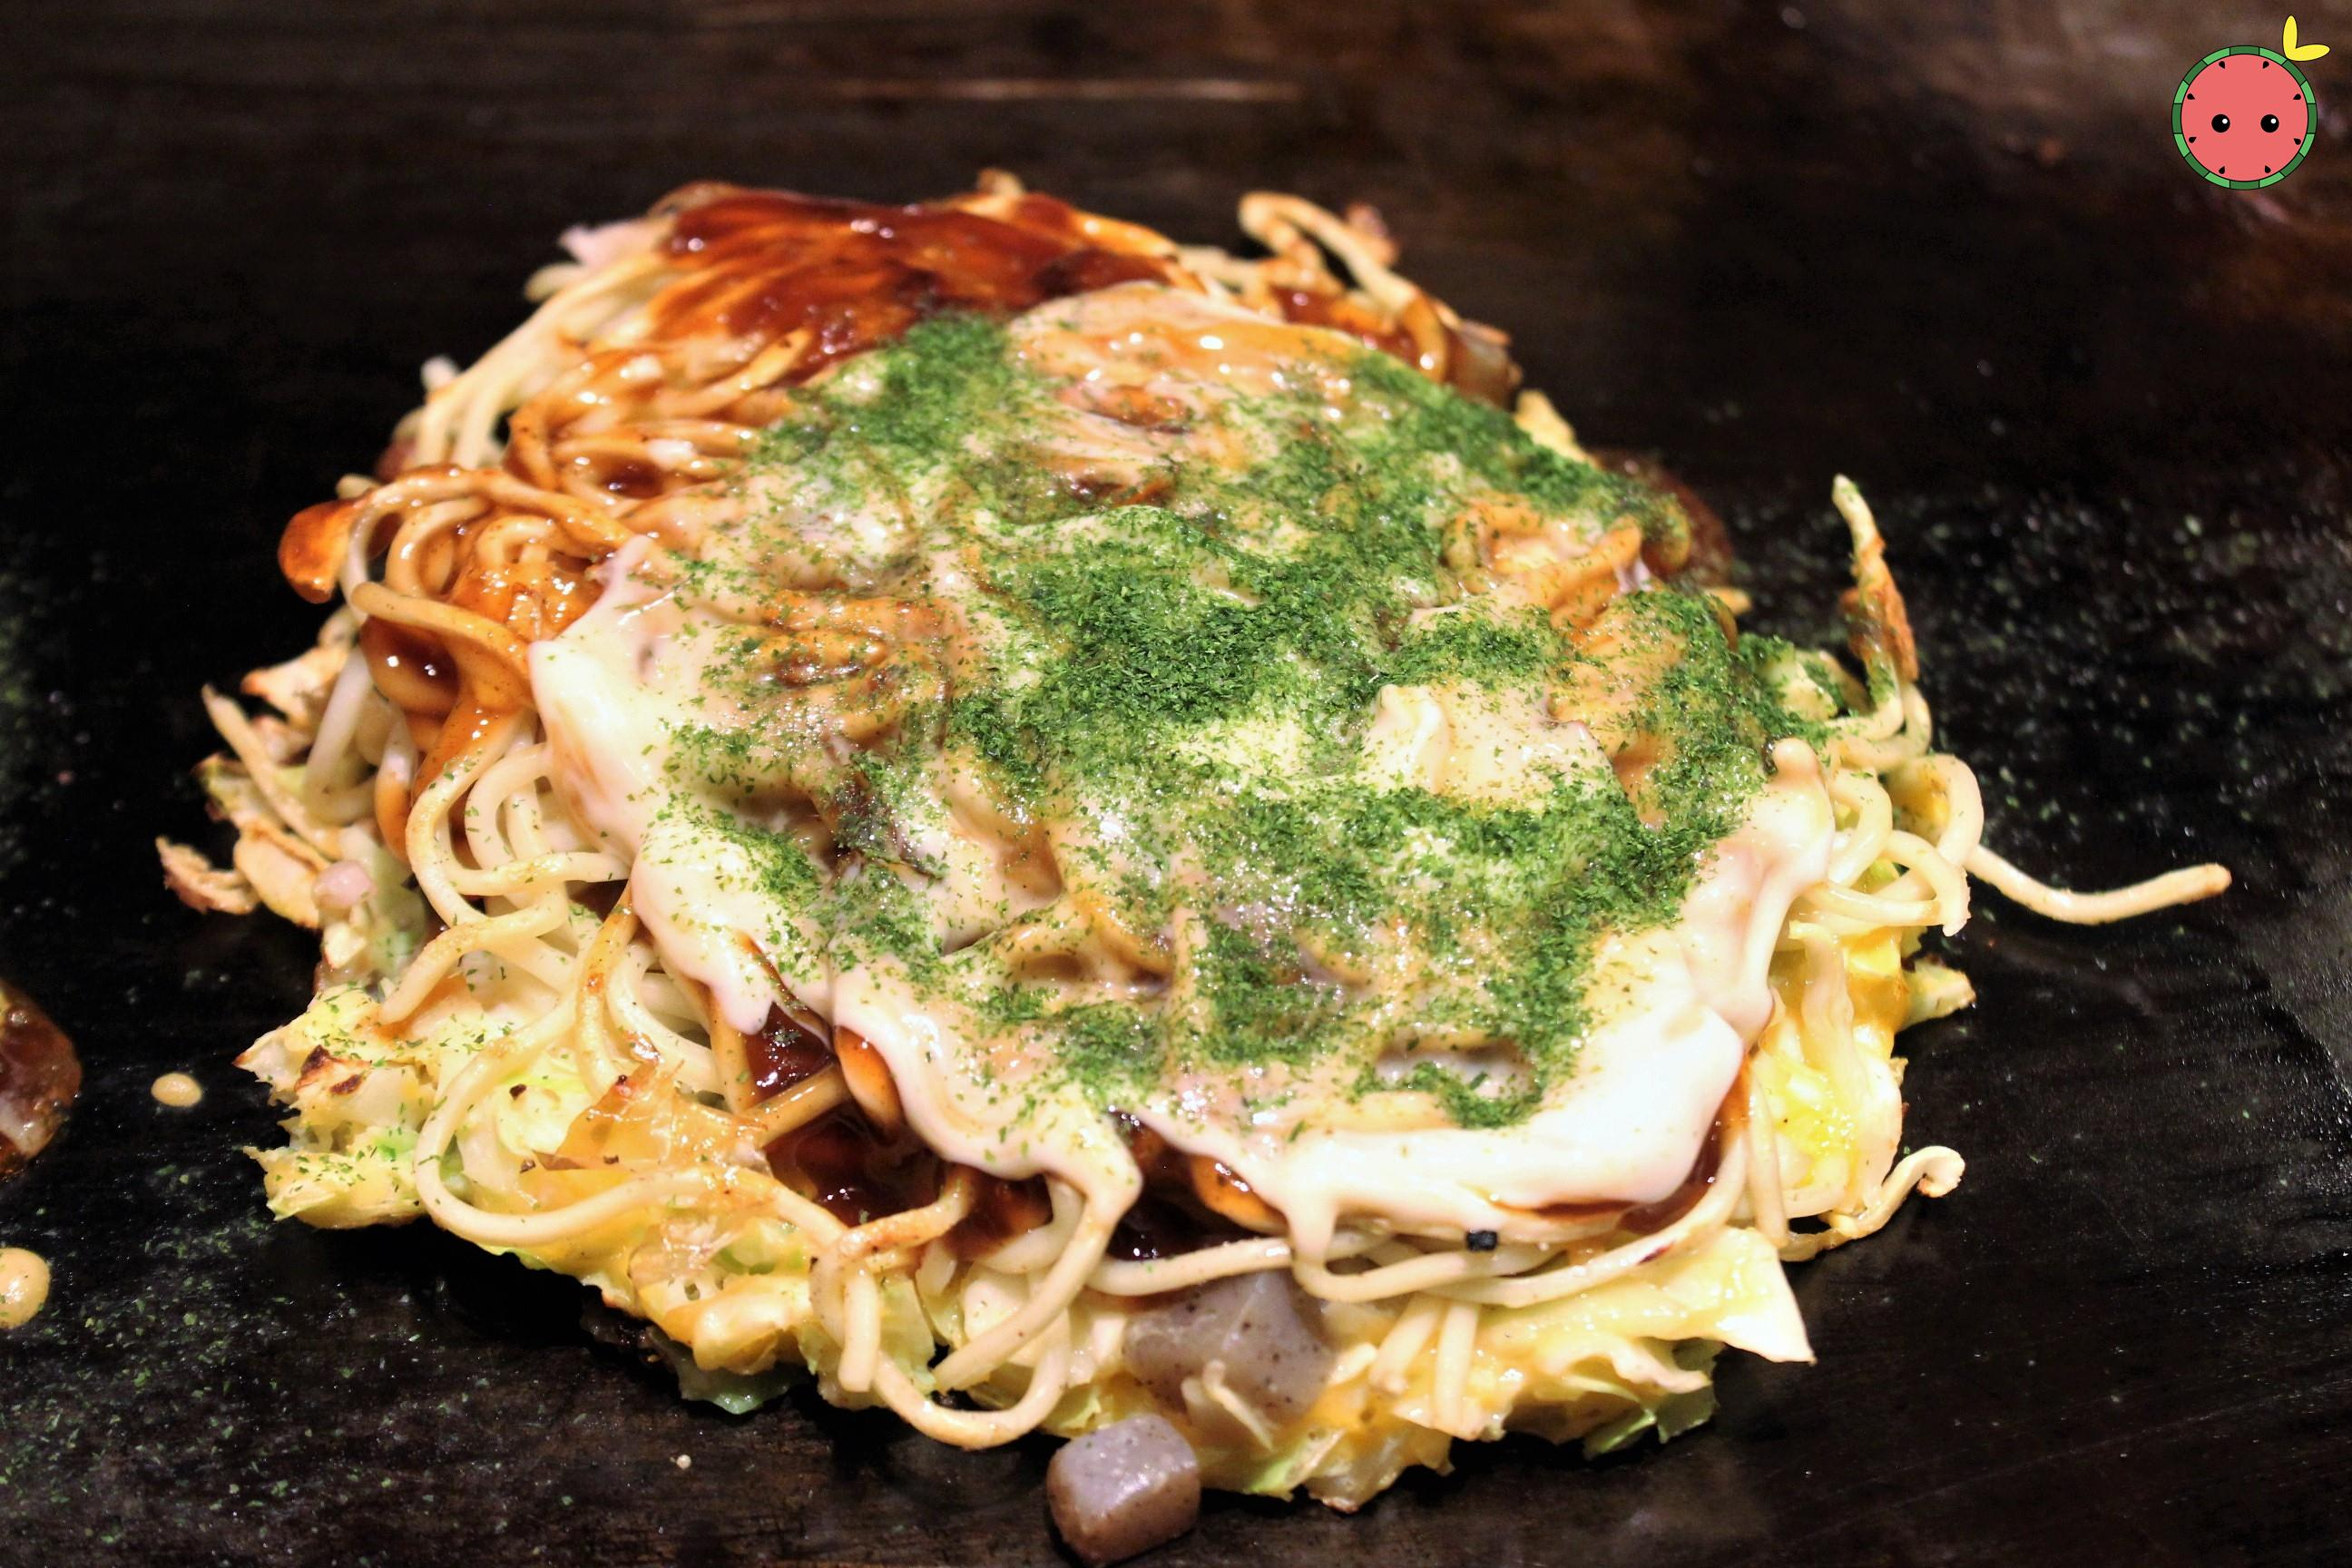 Modan-Yaki with Shrimps and Scallops